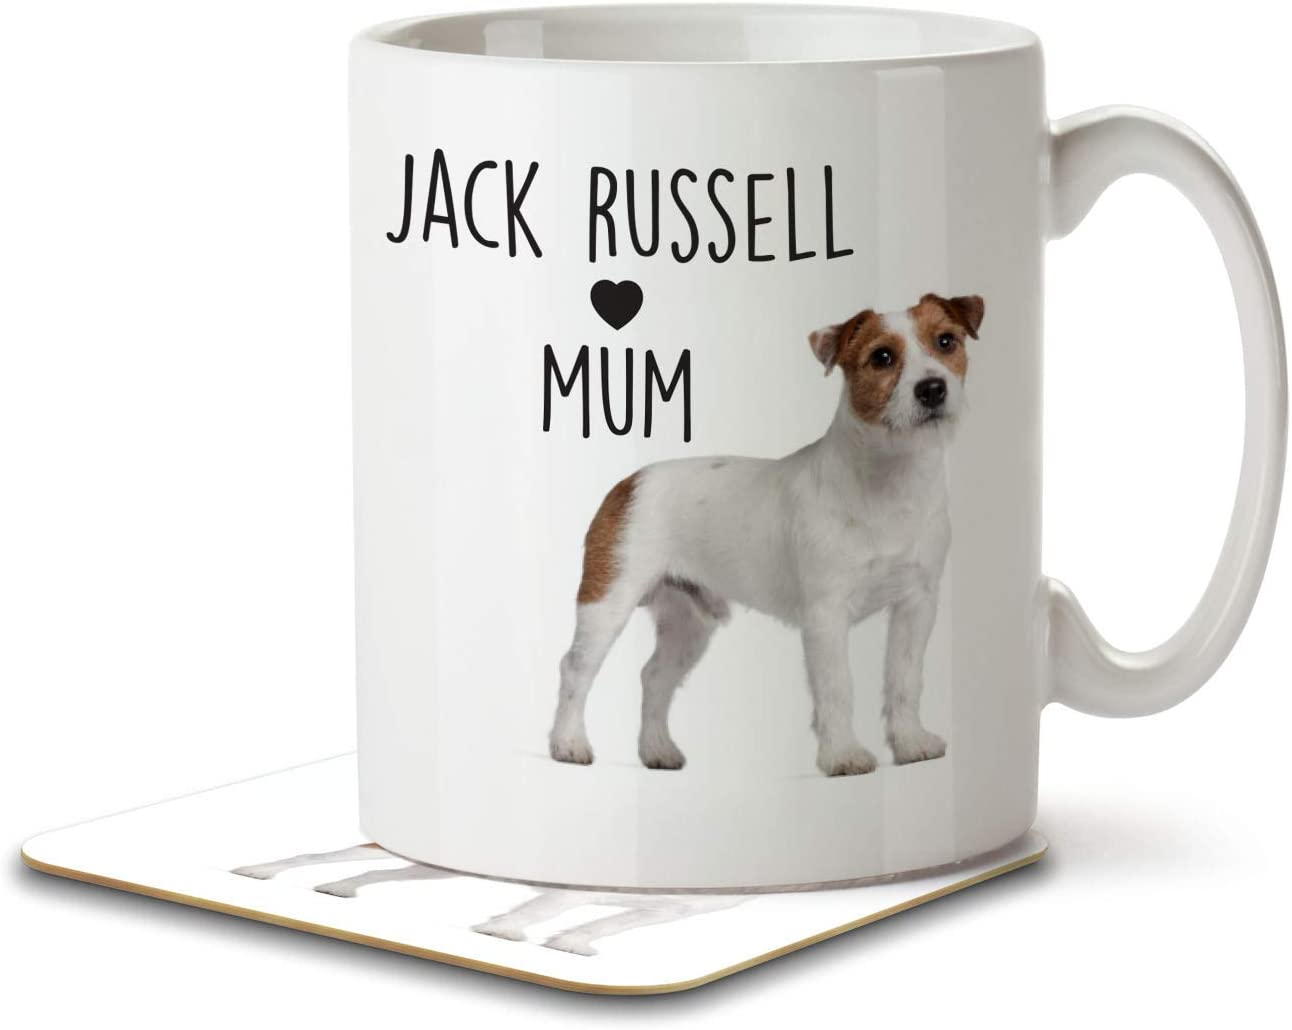 Jack Russell Dad Mug and Coaster by Inky Penguin